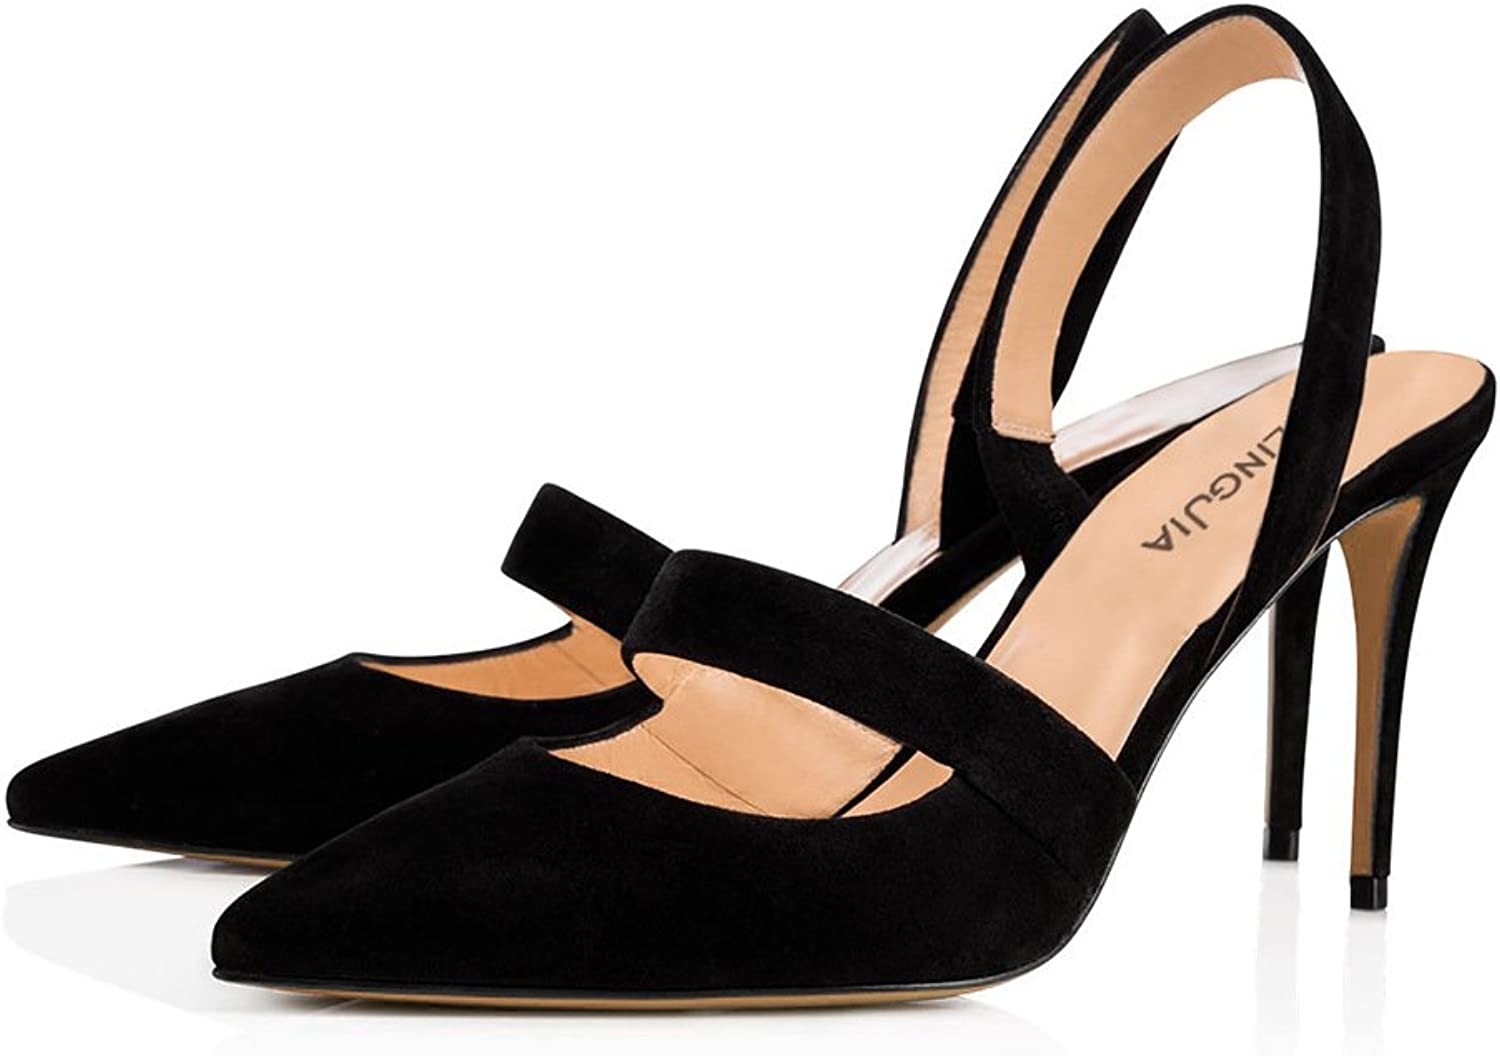 Women's shoes New Spring Summer High-Heeled Sandals Peep Toe Dinner shoes Black Brown Wedding shoes Silver Black